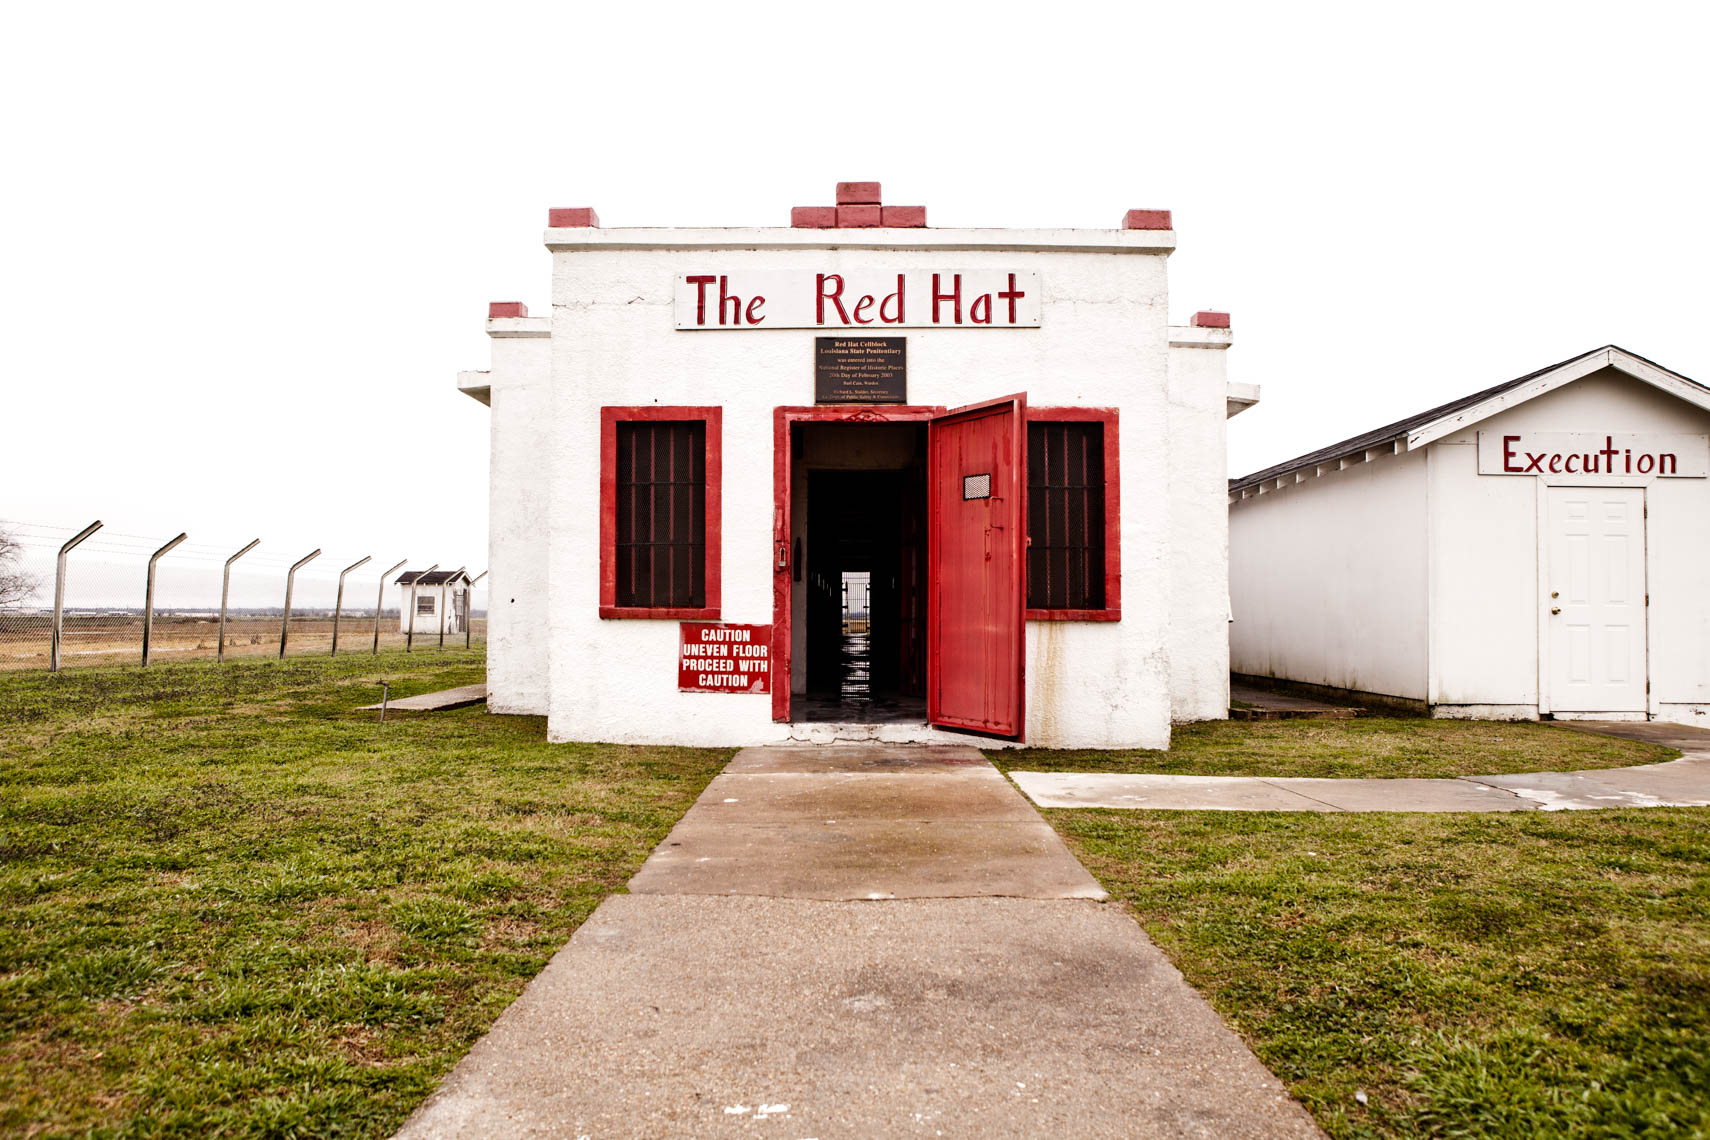 Angola Prison - The Red Hat